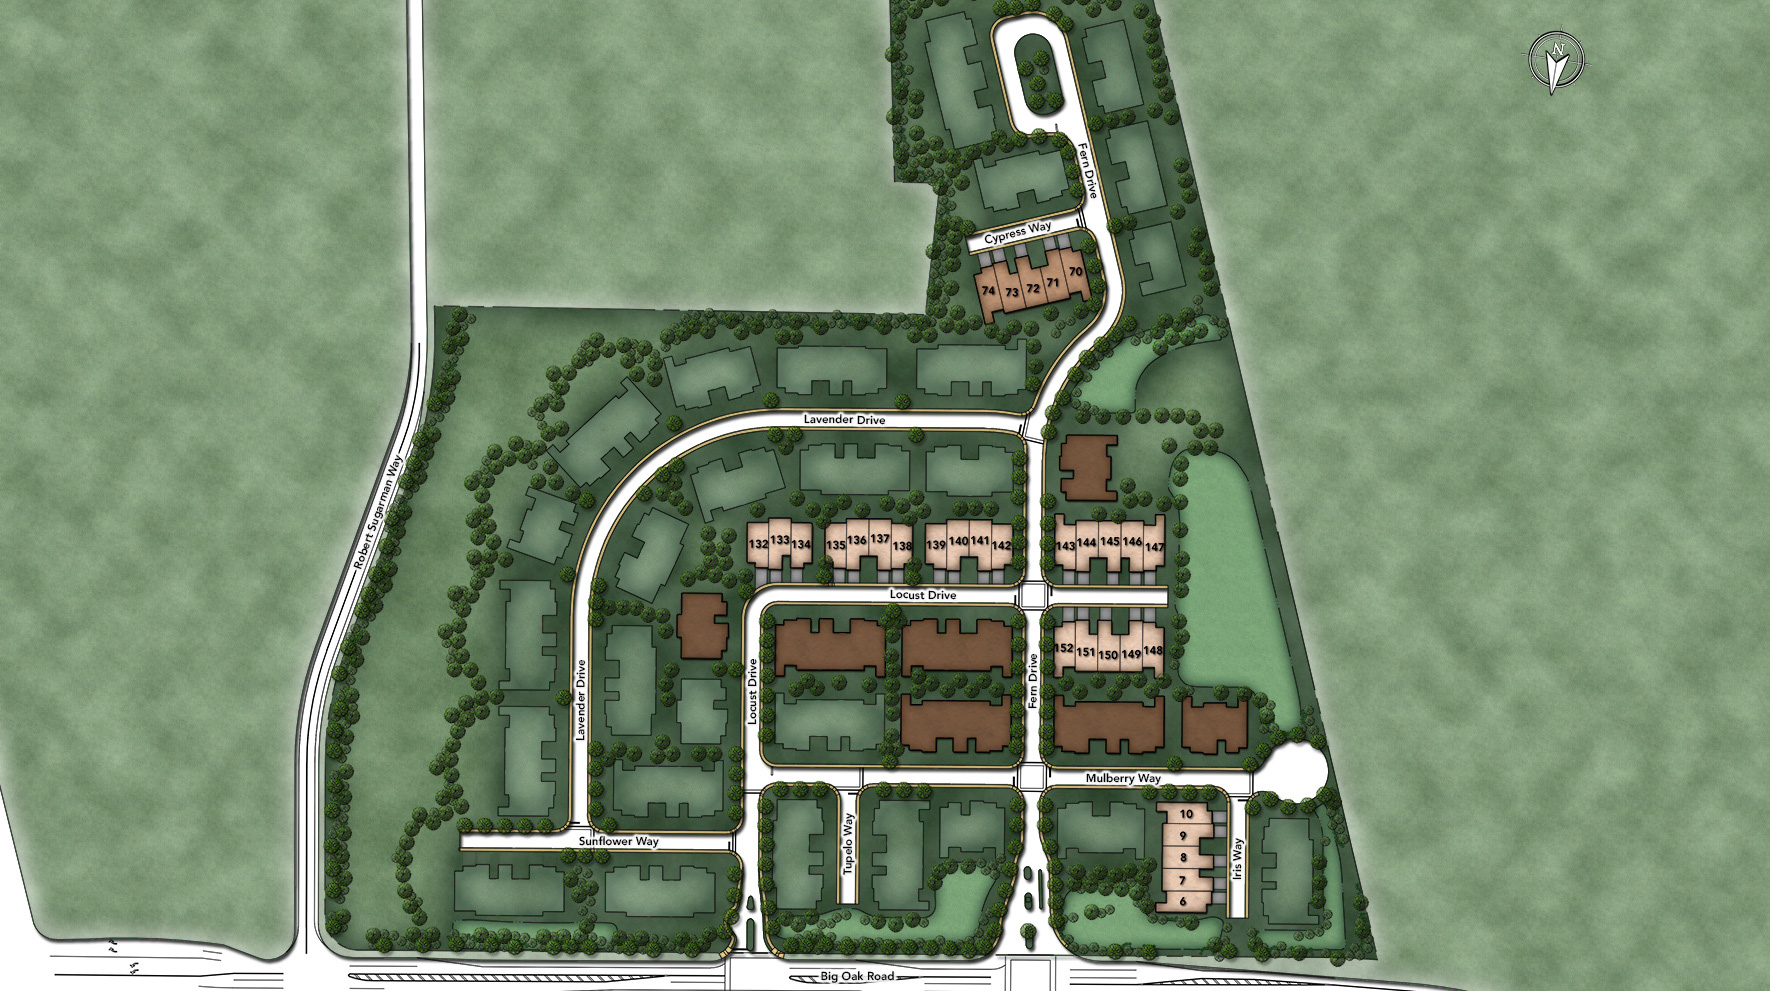 Regency at Yardley - The Carriage Collection Site Plan